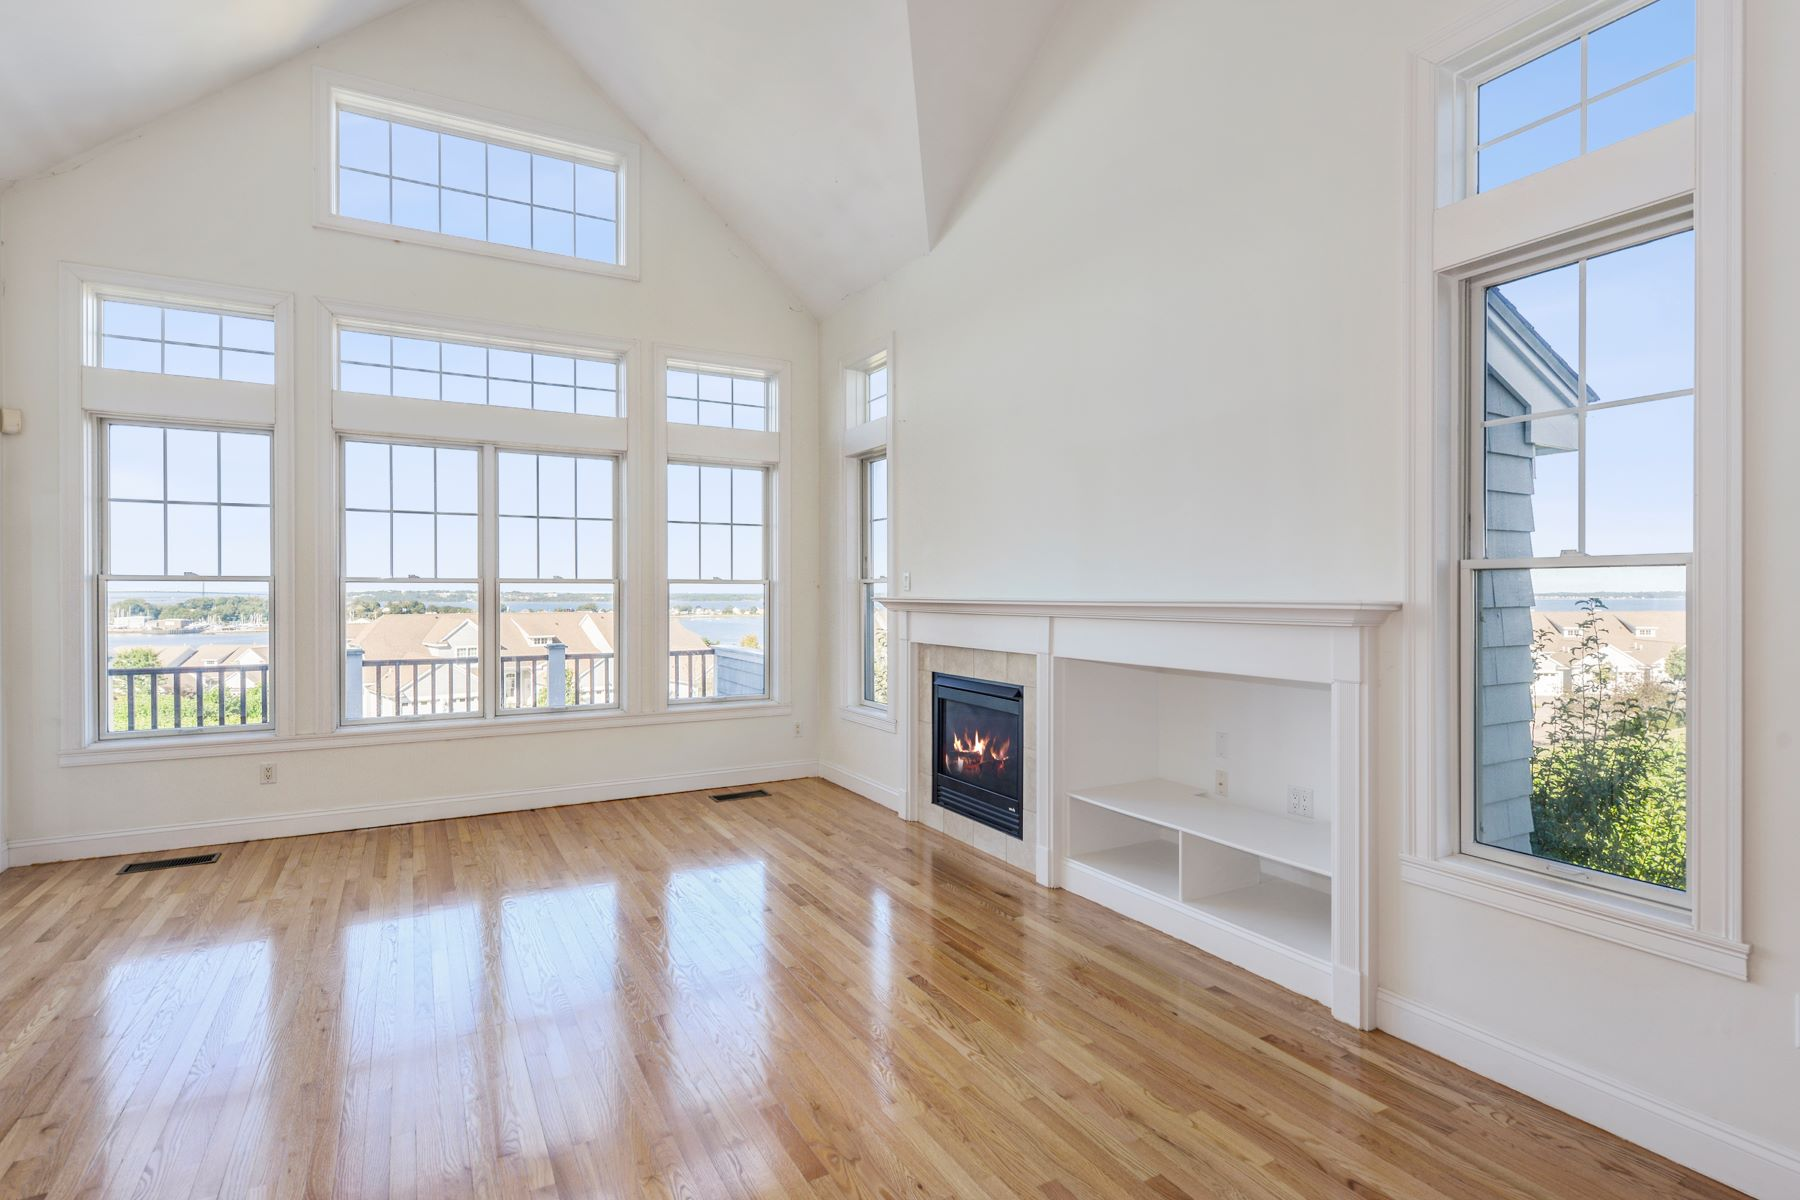 Additional photo for property listing at Villages on Mount Hope Bay 29 Cutter Lane Unit #120 Tiverton, Rhode Island 02878 United States